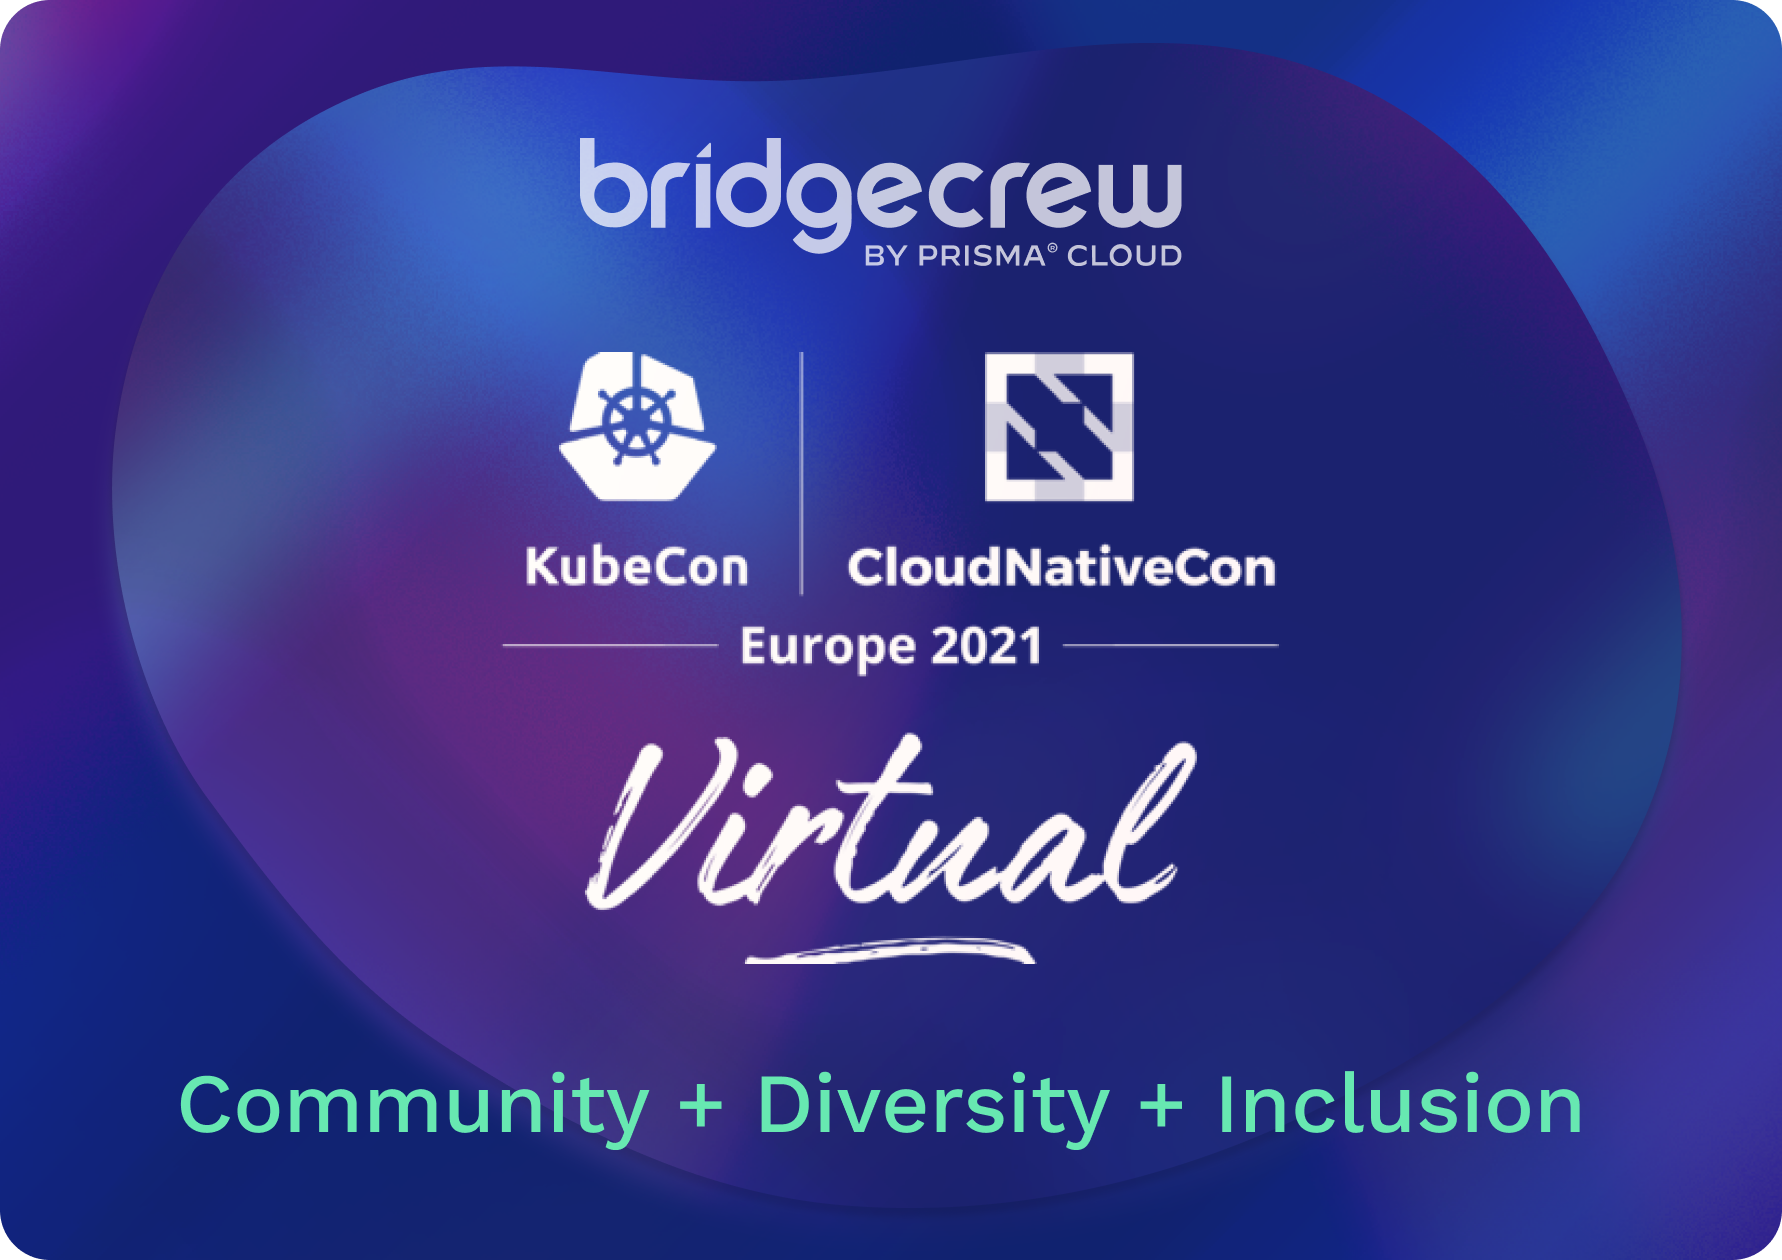 Bridgecrew Diversity and Inclusion All Access Passes for KubeCon